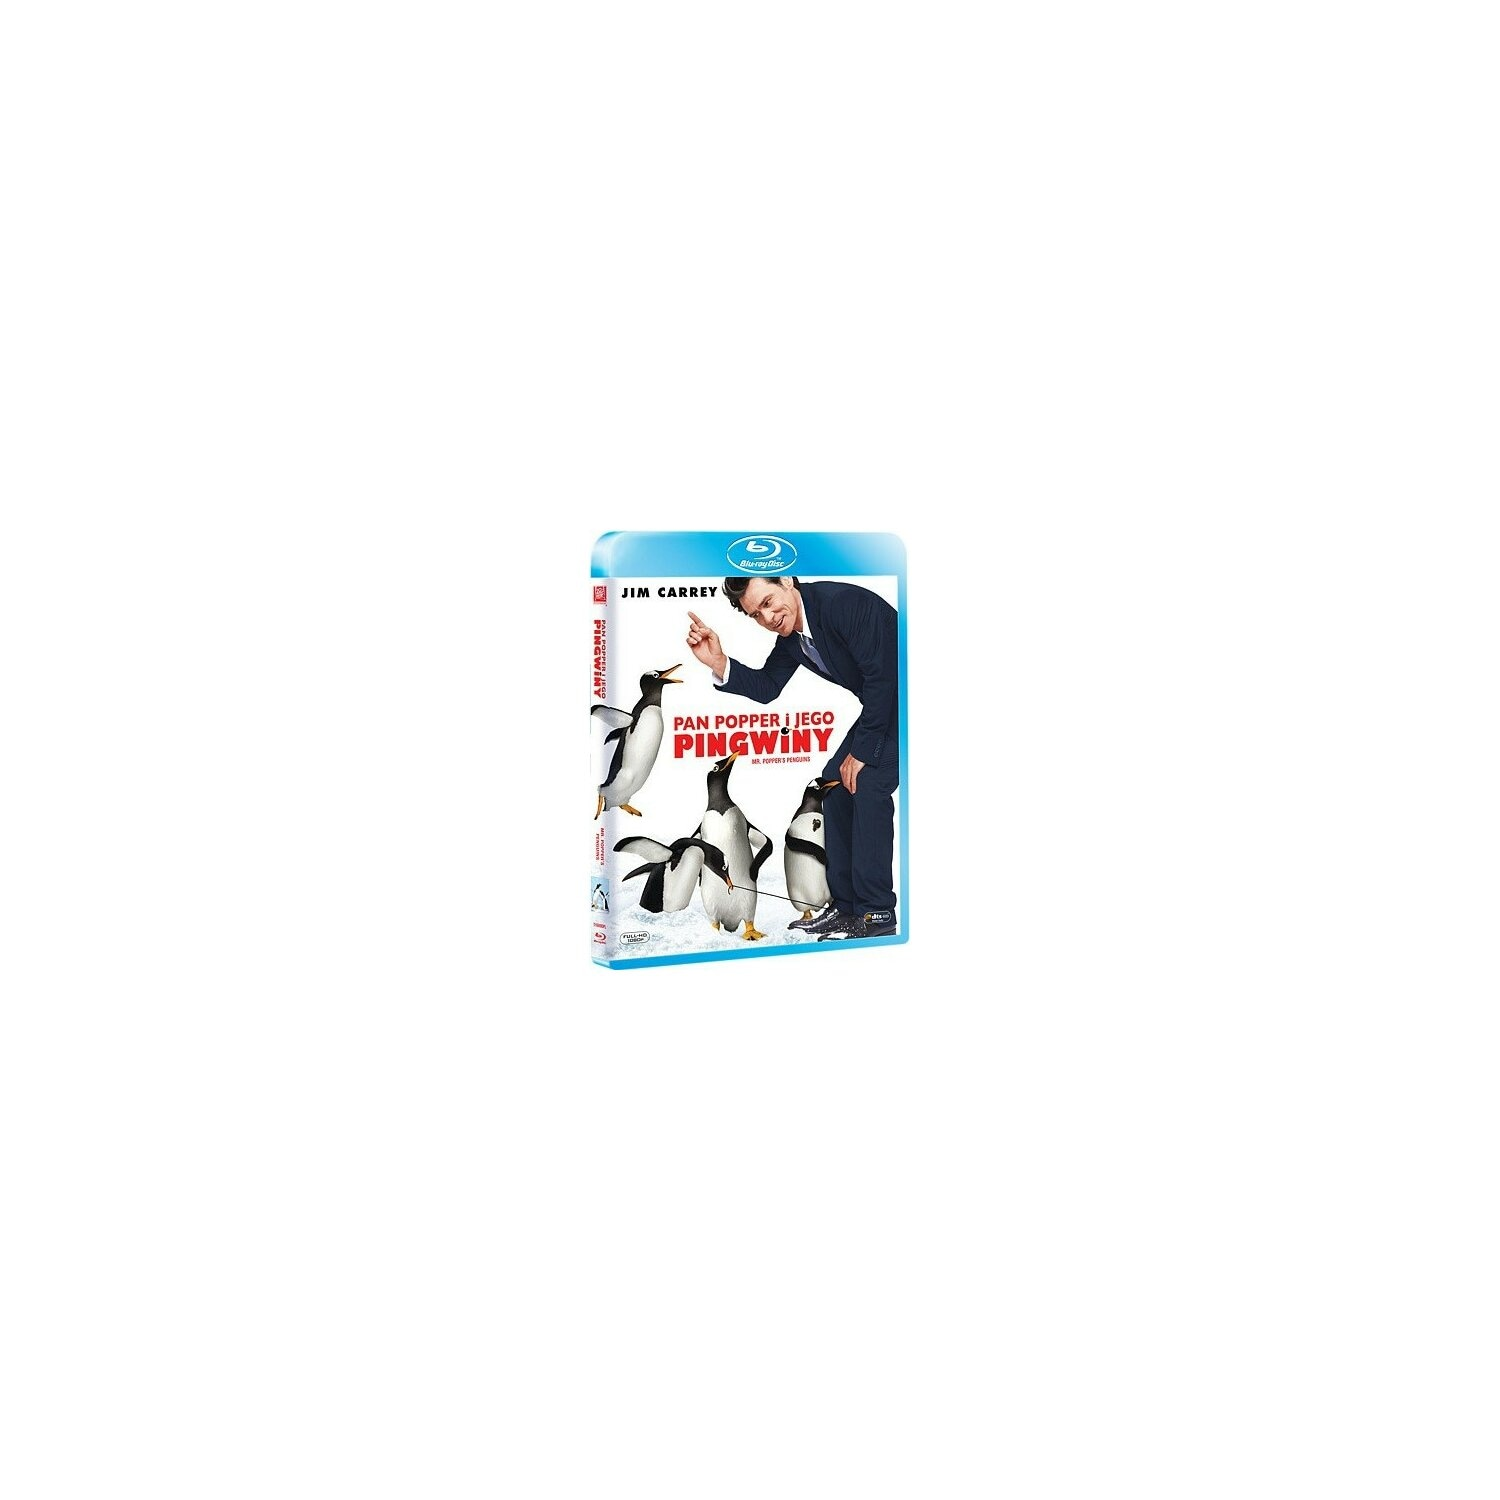 Film IMPERIAL CINEPIX Pan Popper i jego pingwiny Mr. Popper's Penguins